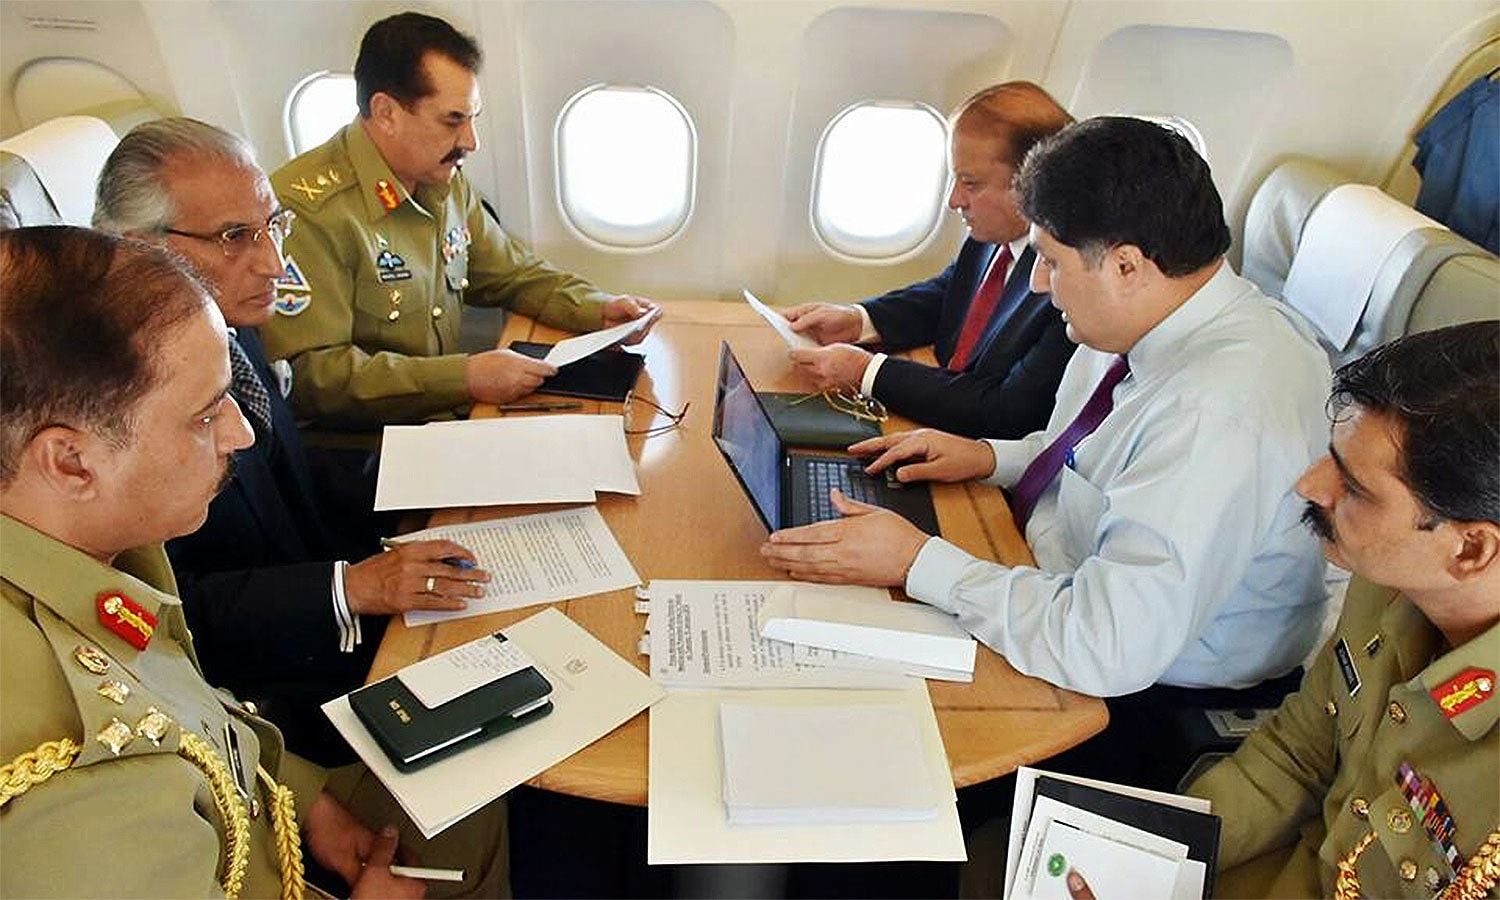 Prime Minister Nawaz Sharif, COAS General Raheel Sharif, SAPM on Foreign Affairs Mr. Tariq Fatemi holding consultative meetings inside the plane on their way to Saudi capital Riyadh.─ Photo: PMO